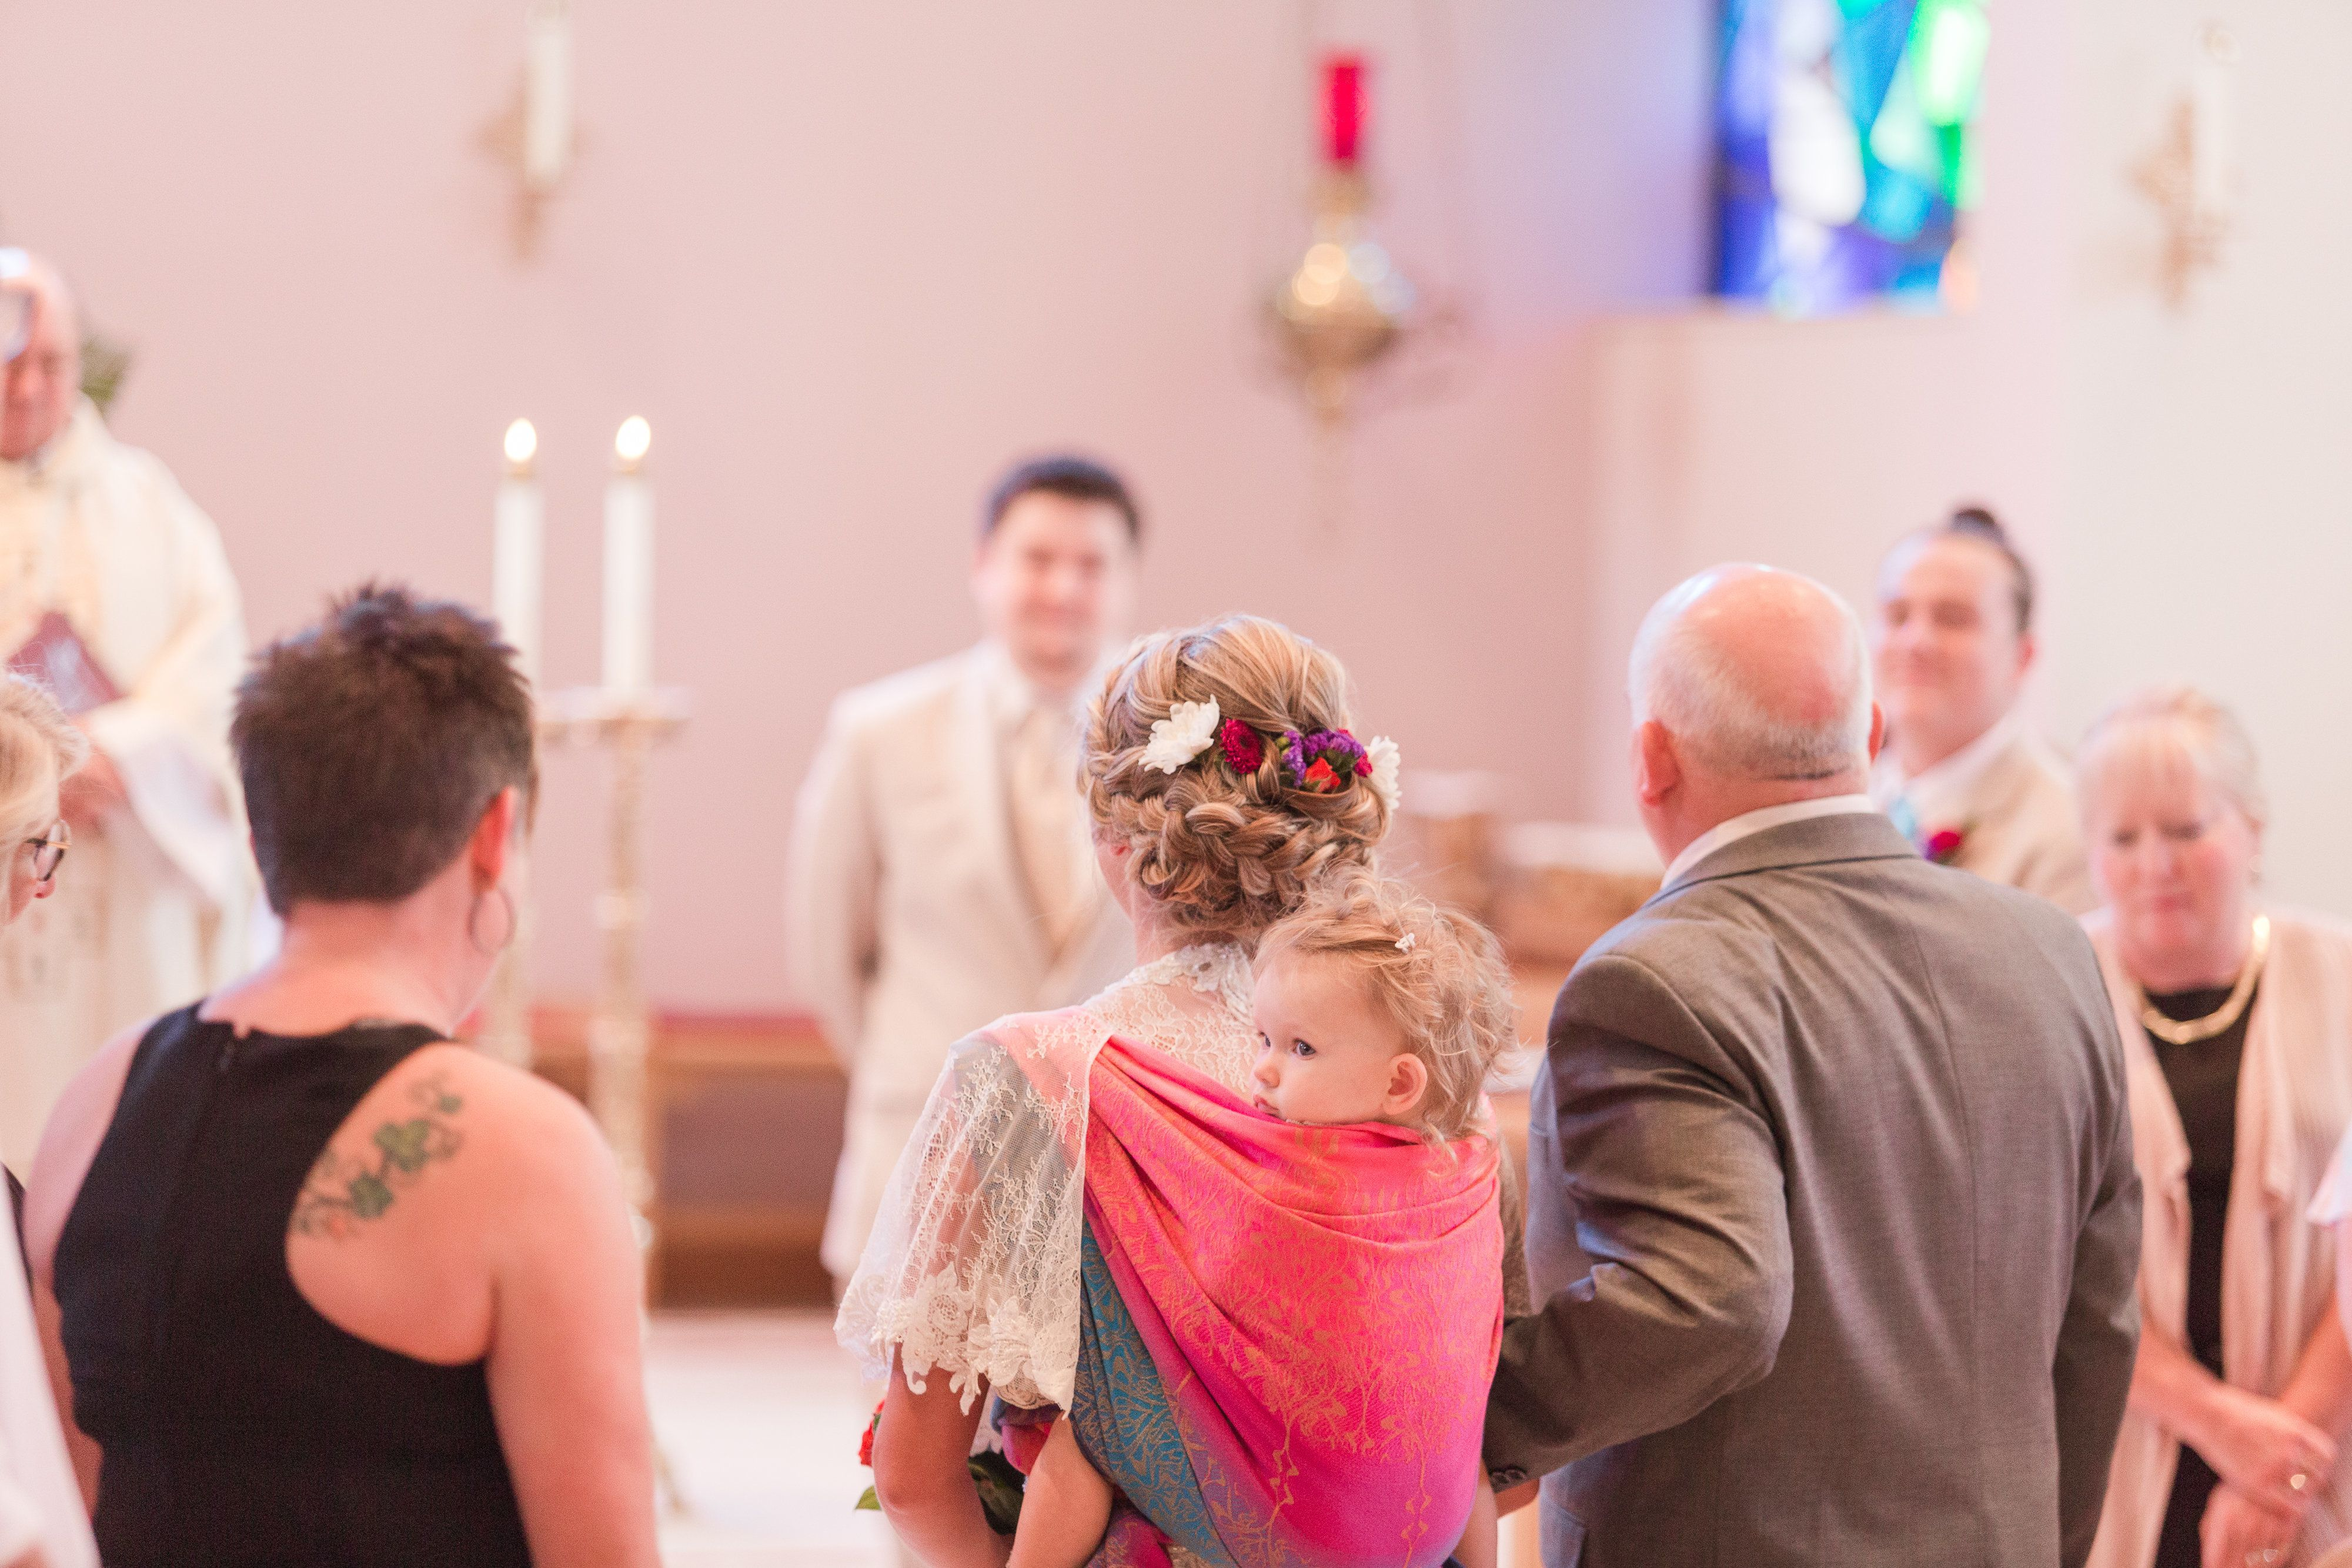 """Dalton Mort wore her toddler in a wrap throughout her wedding ceremony -- a """"fantastic idea"""" that led to great photos, said photographer Laura Schaefer."""